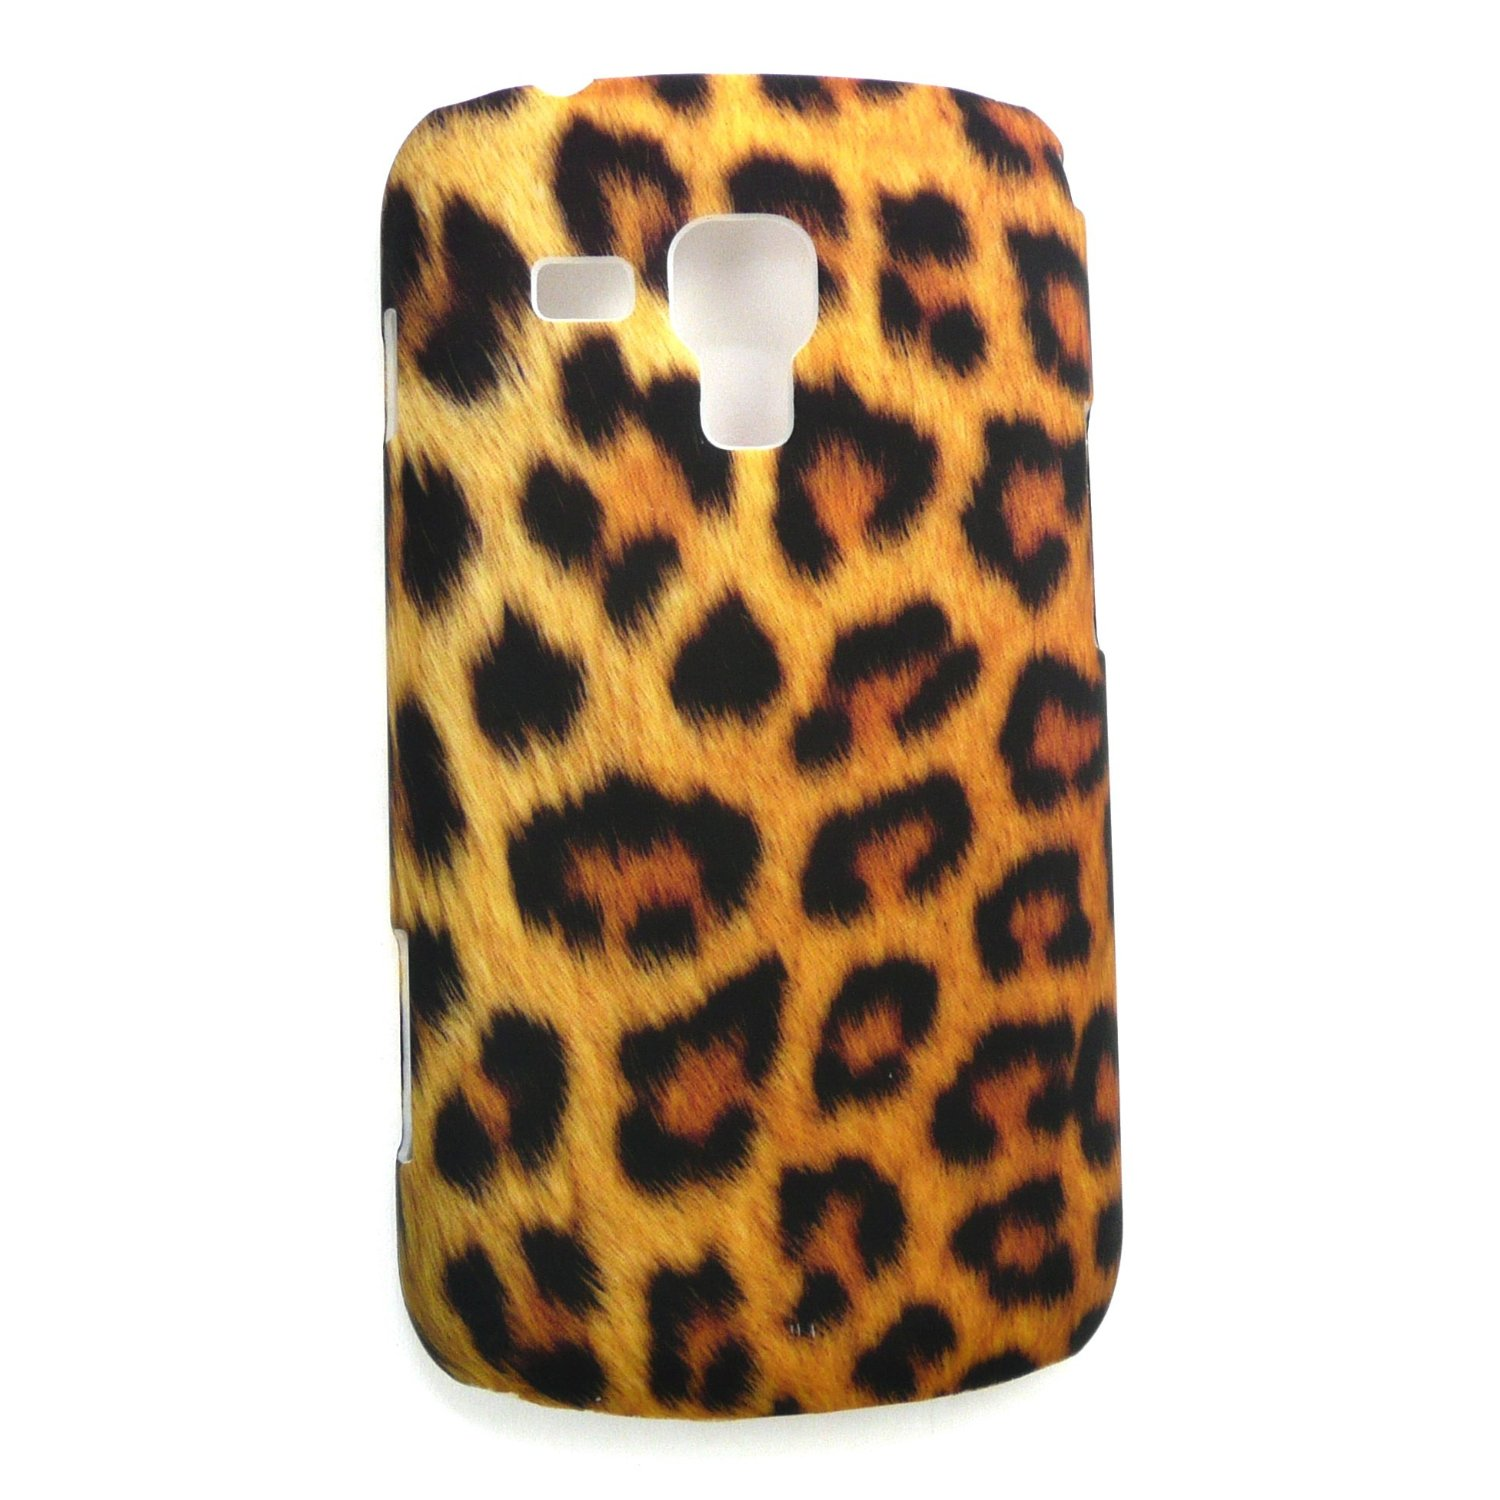 Hard Cover Samsung Galaxy S Duos S7562